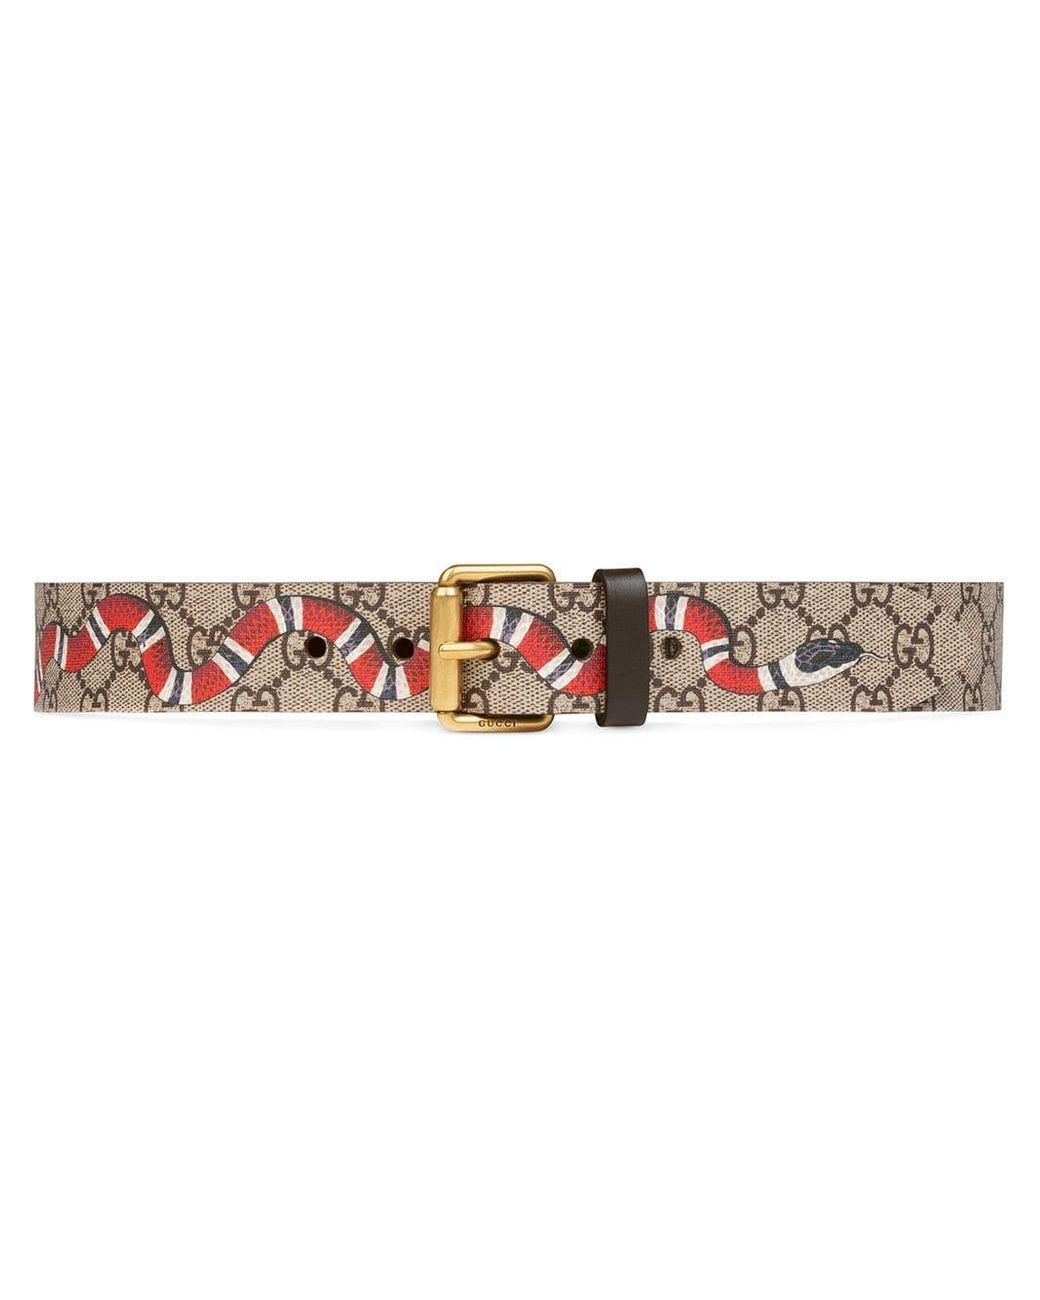 5a936a65d Gucci Snake Print Gg Supreme Belt for Men - Save 13% - Lyst